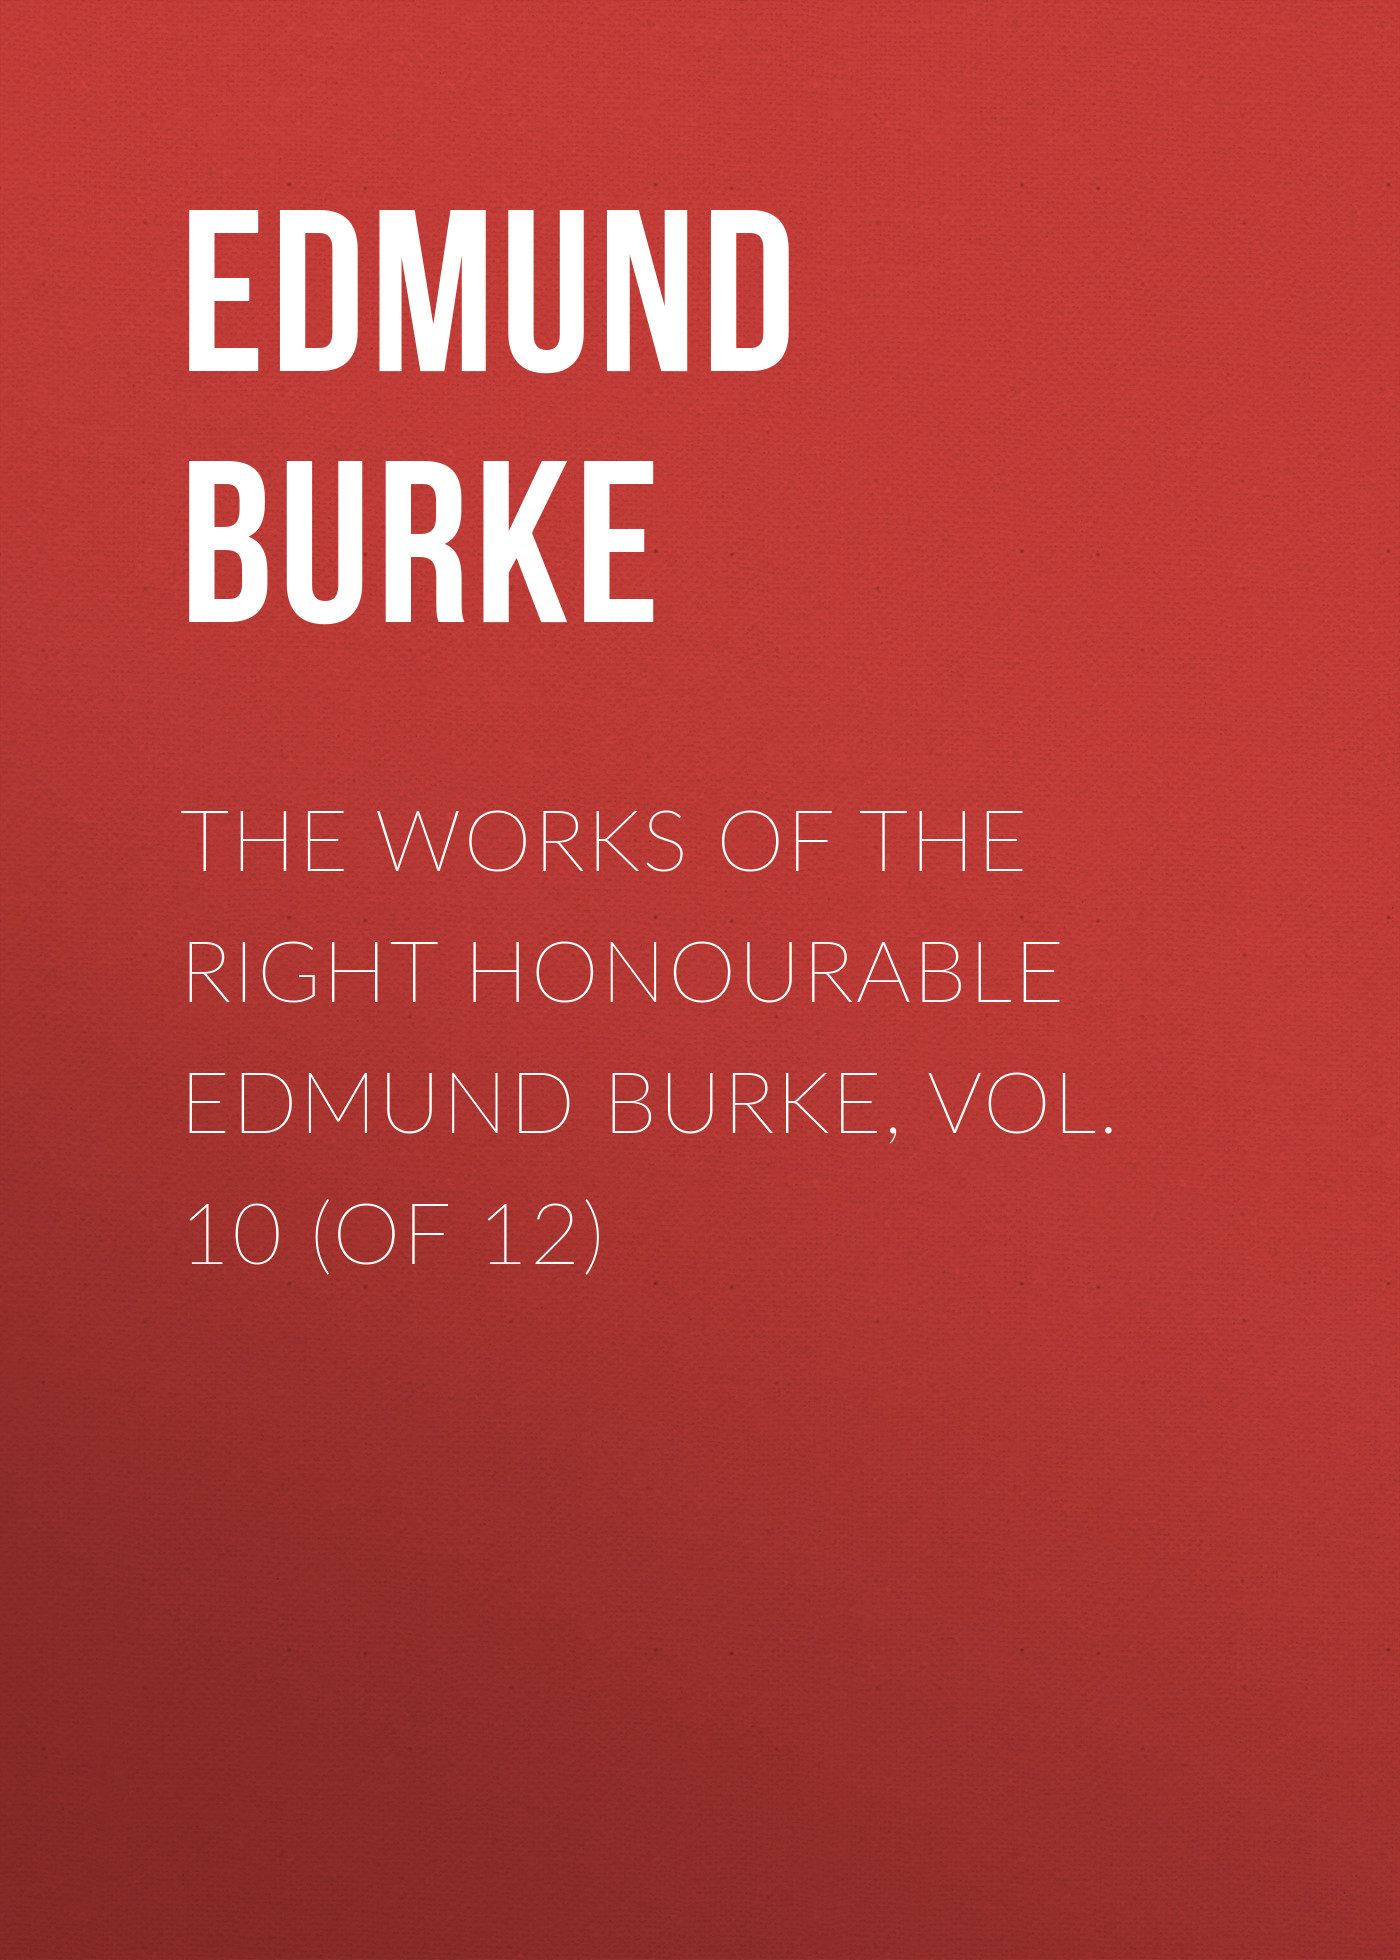 Edmund Burke The Works of the Right Honourable Edmund Burke, Vol. 10 (of 12) edmund burke the works of the right honourable edmund burke vol 12 of 12